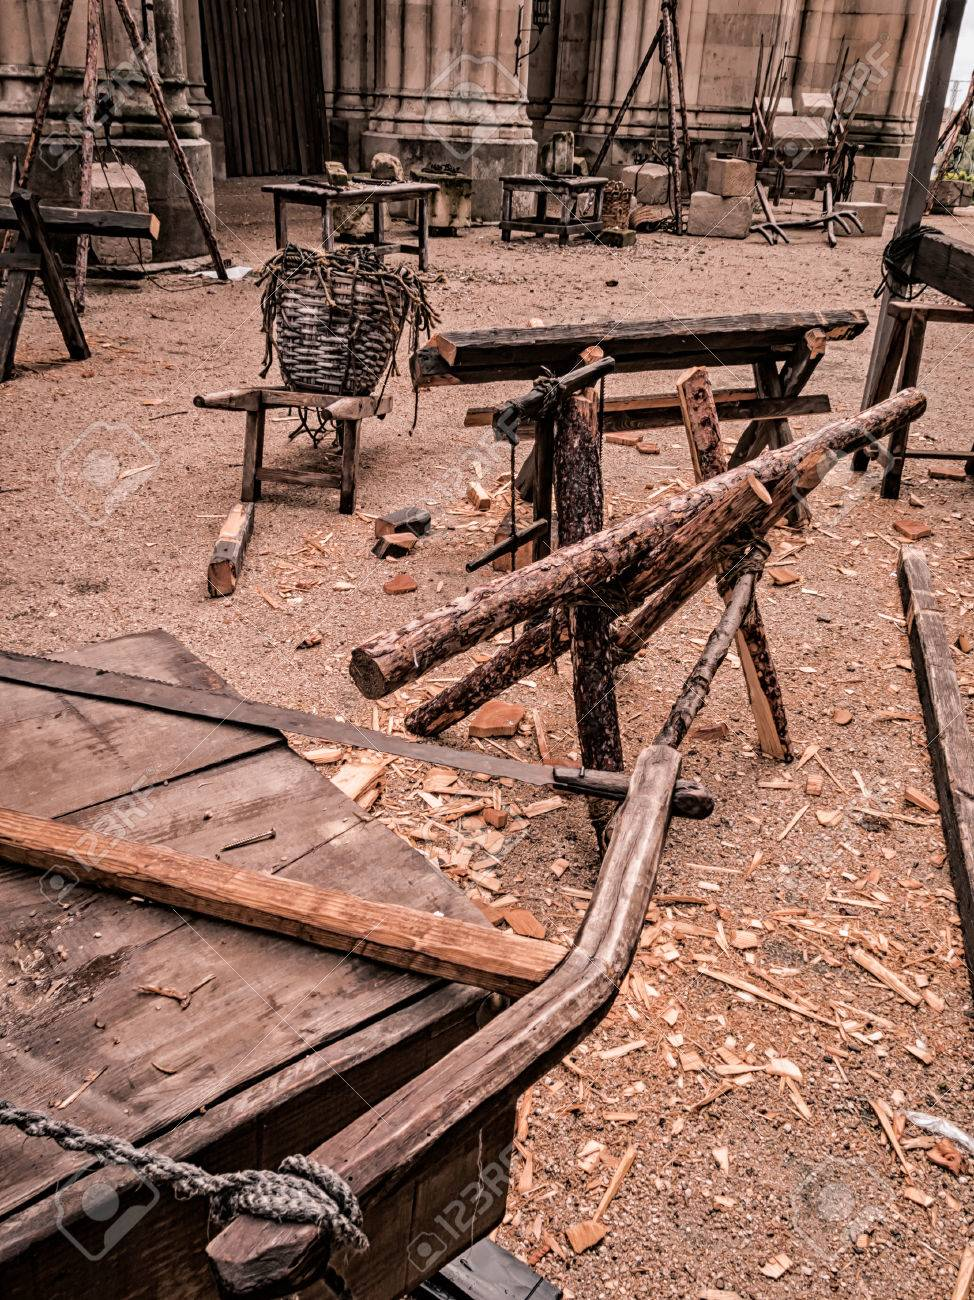 Old tools of a artisan sawmill : saw, ropes, wood